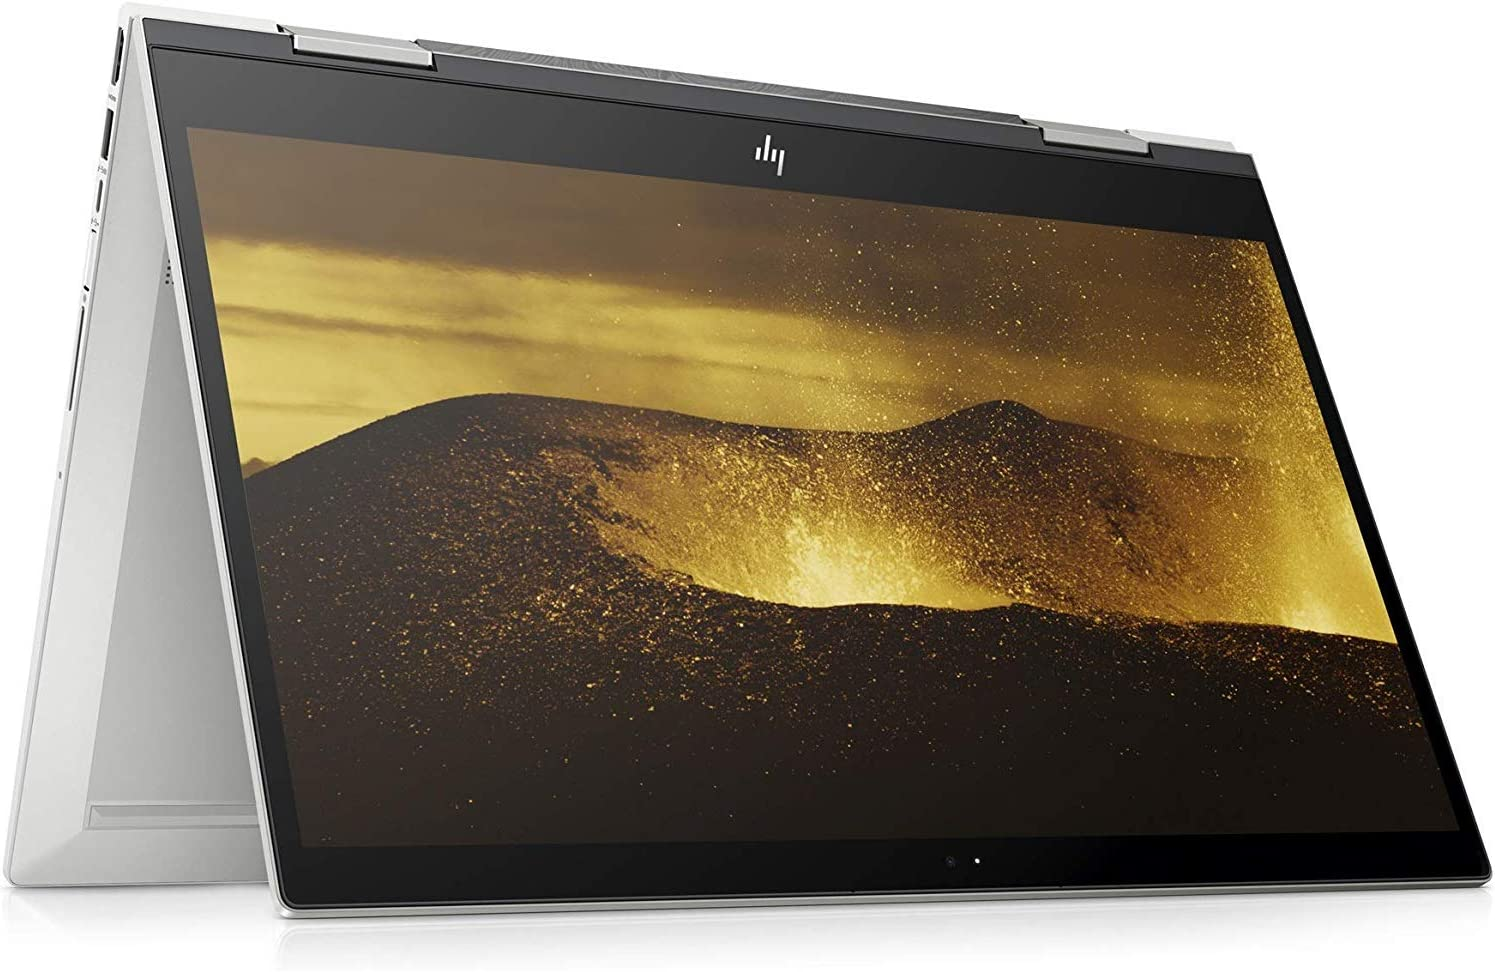 HP Envy Touch 15t-CN100 x360 2-in-1 Convertible Laptop Intel i5 Quad up to 3.9GHz 12GB RAM 512GB SSD 15.6inch FHD Backlit Keyboard Fingerprint Reader (Renewed)